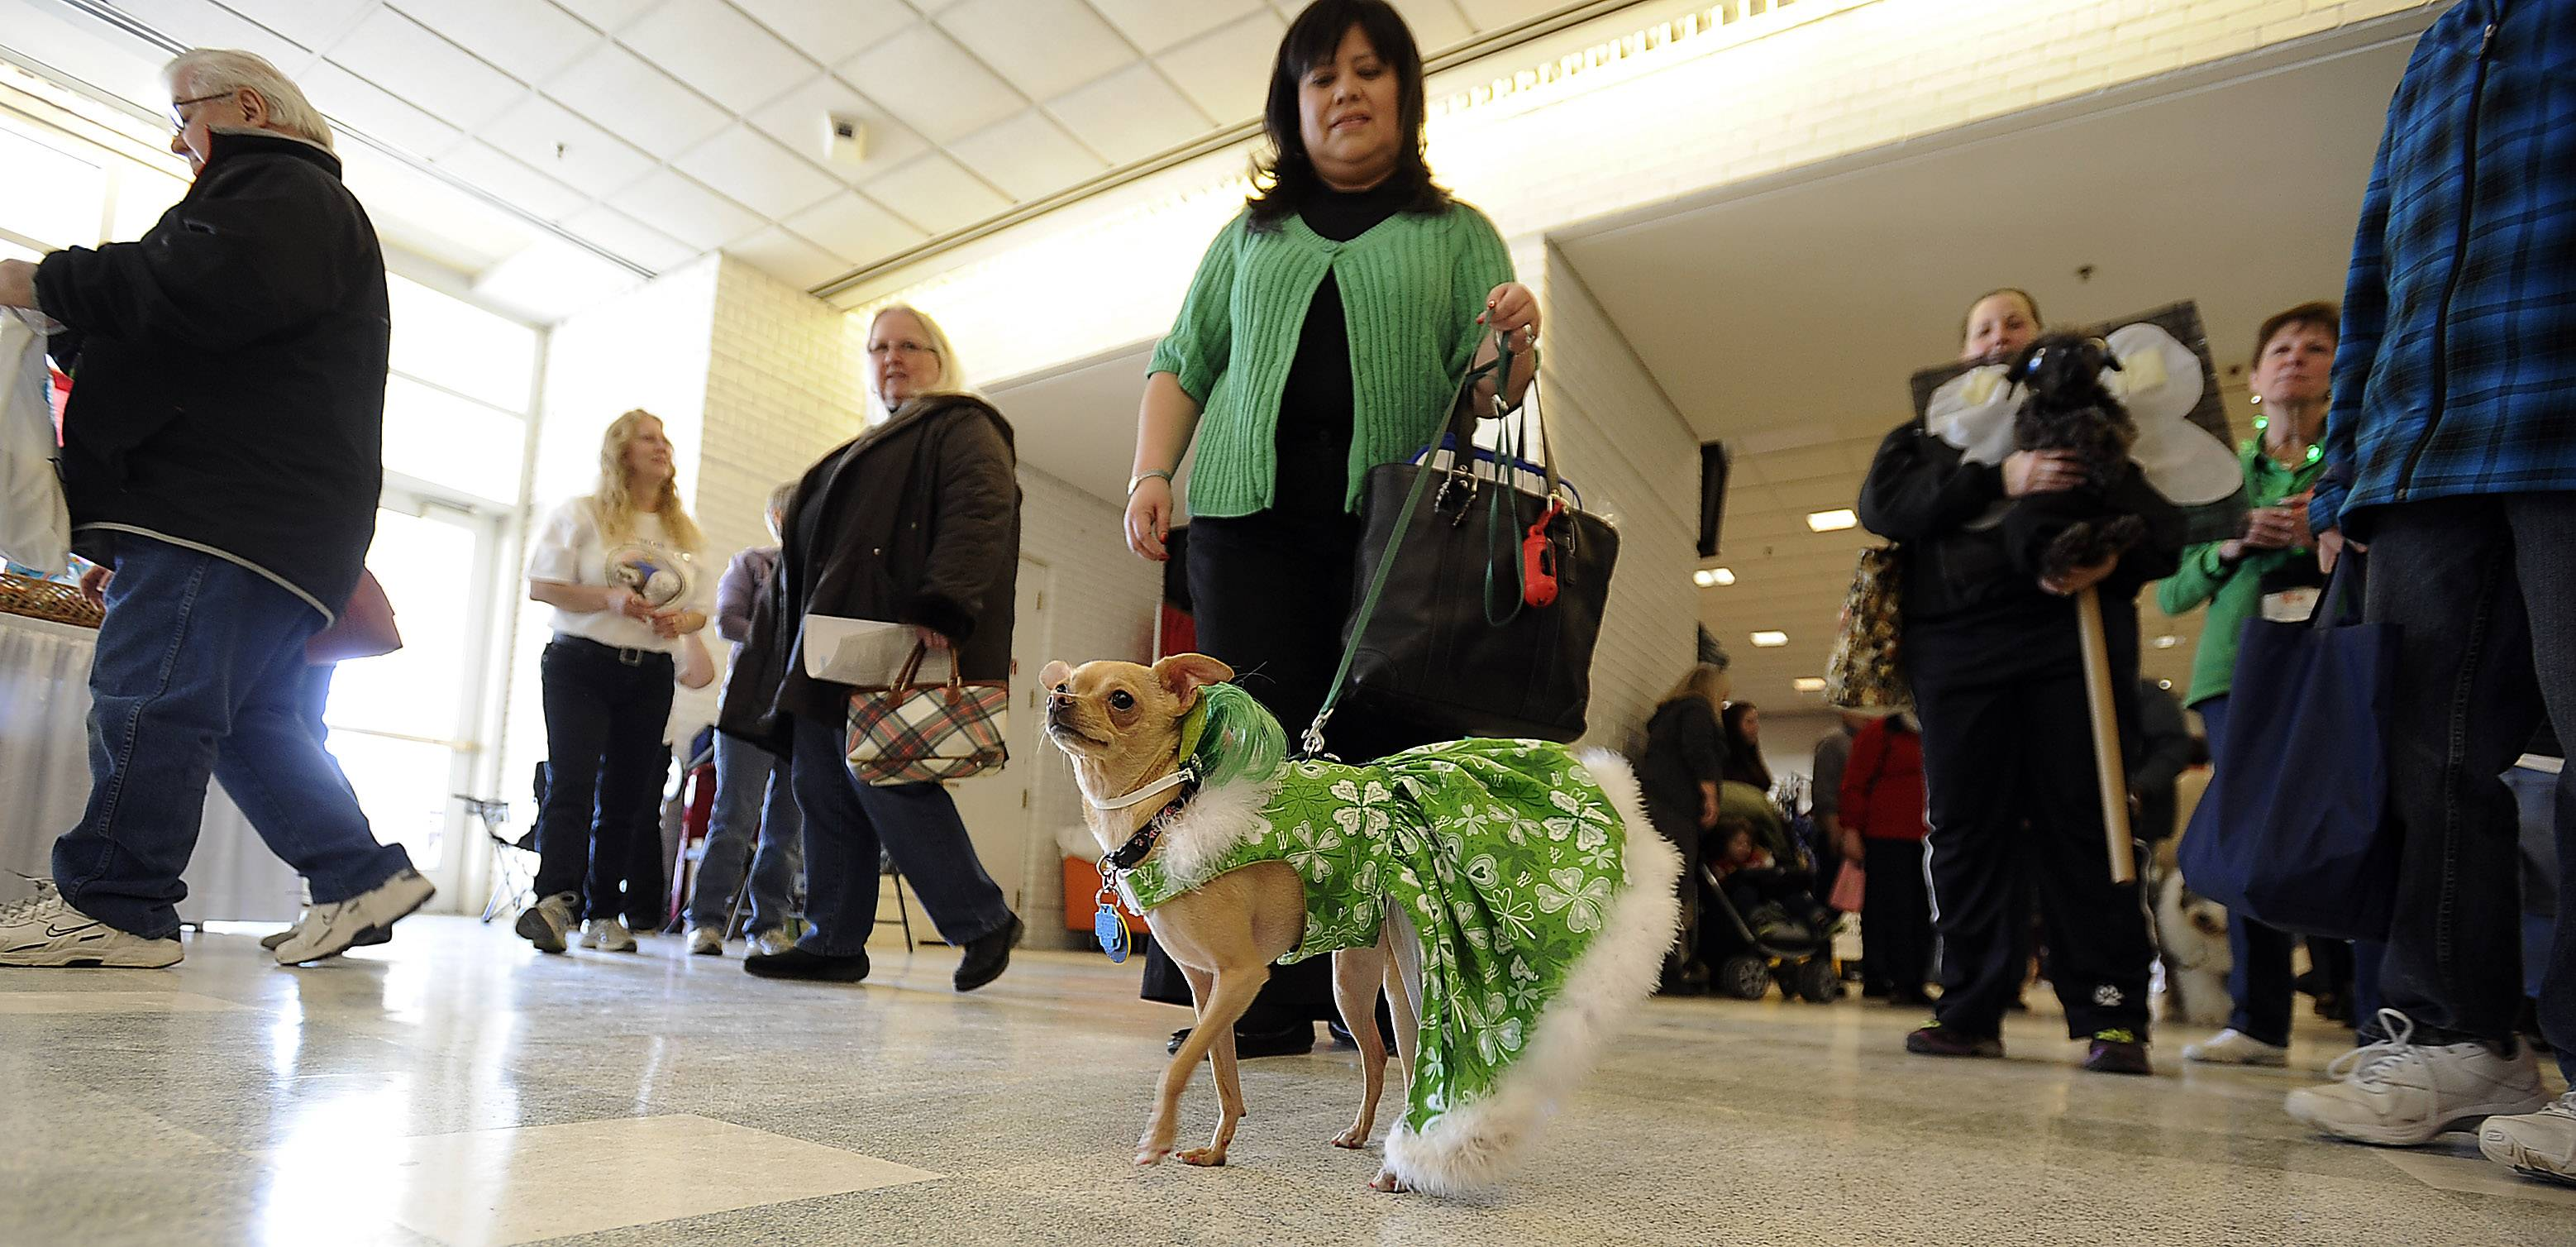 Pita the Chihuahua was a big hit during the Pet Parade as owner Linda Trevino-Garcia shows her off to the crowd Friday at the Chicagoland Family Pet Expo at Arlington Park.